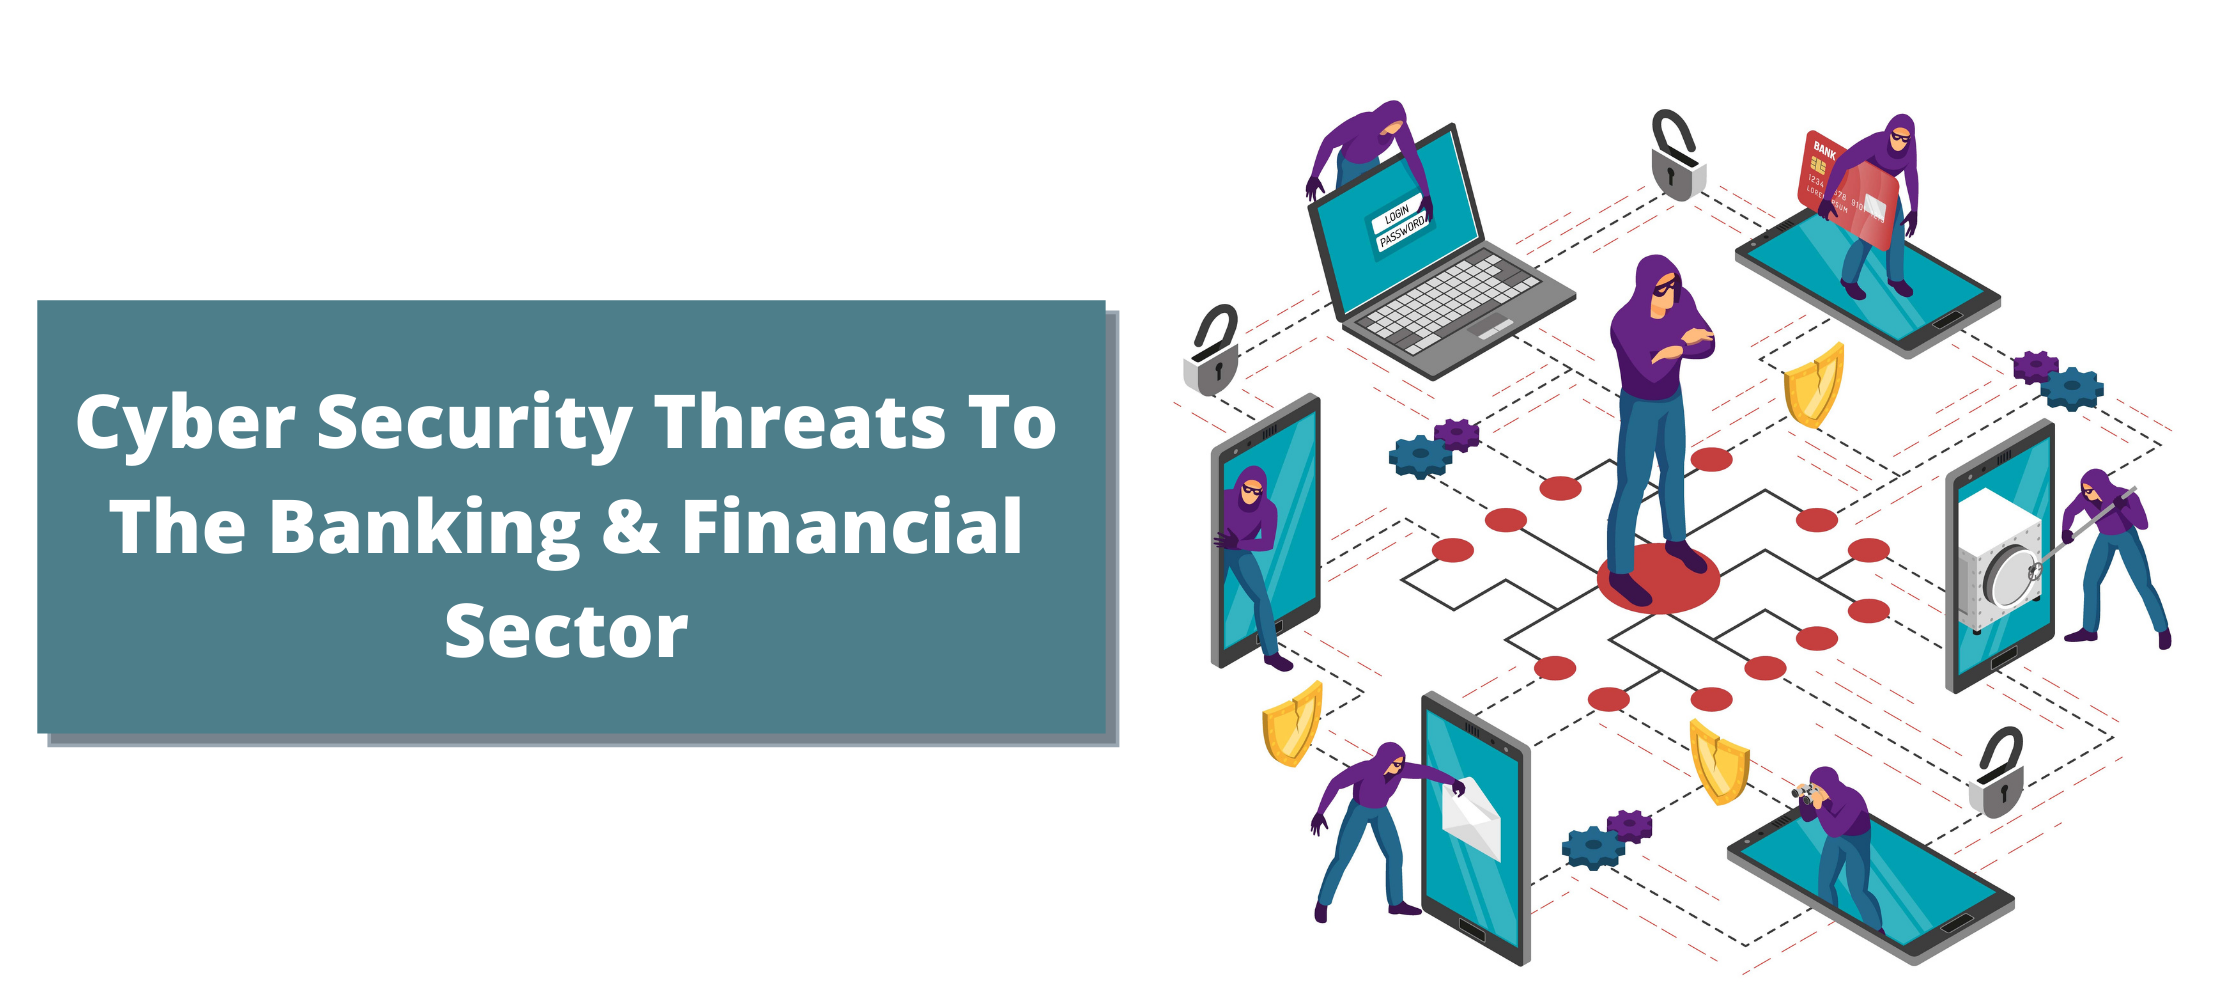 Major Cyber threats in Banking and Finance Sector (BFSI) Organization in 2020